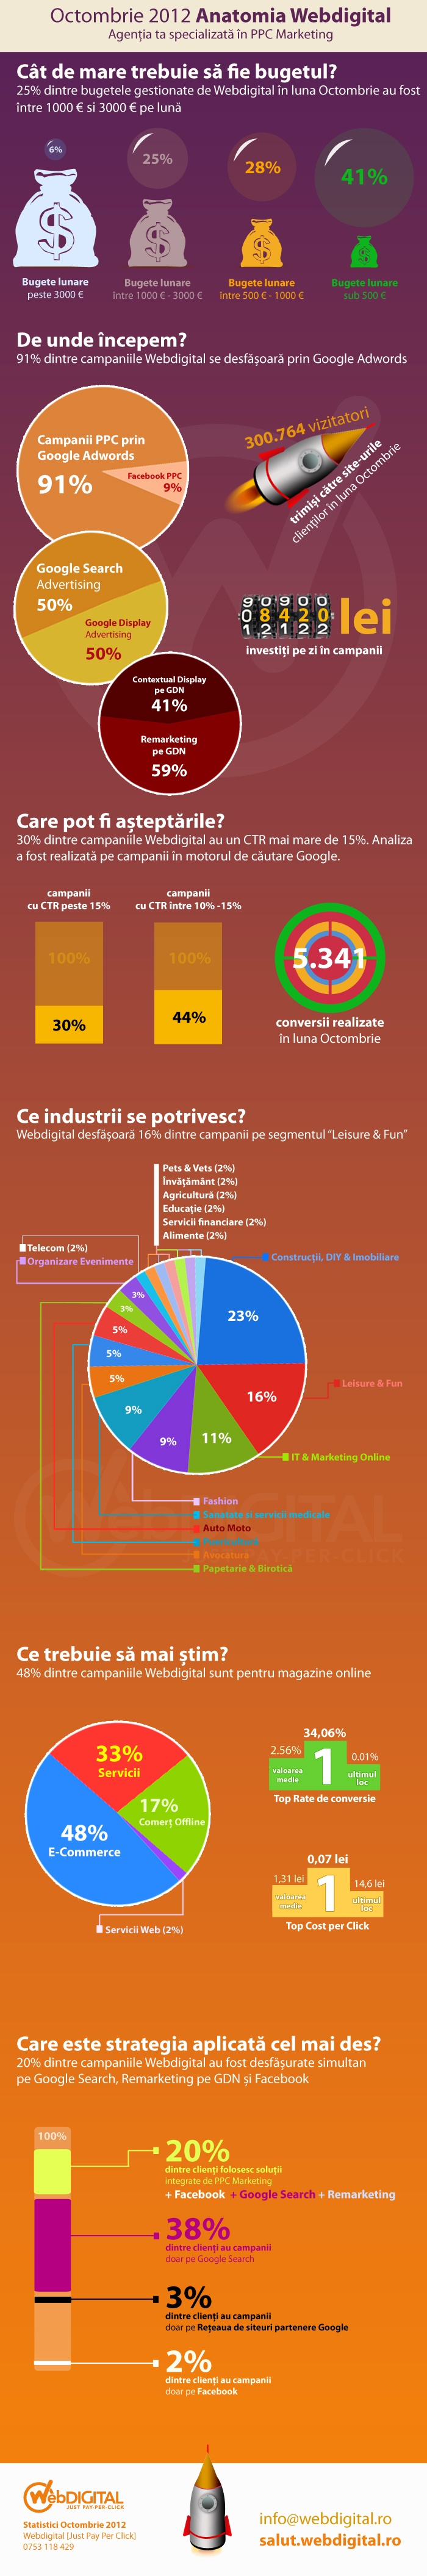 http://www.imunteanu.com/infografice-ppc-marketing-webdigital#octombrie